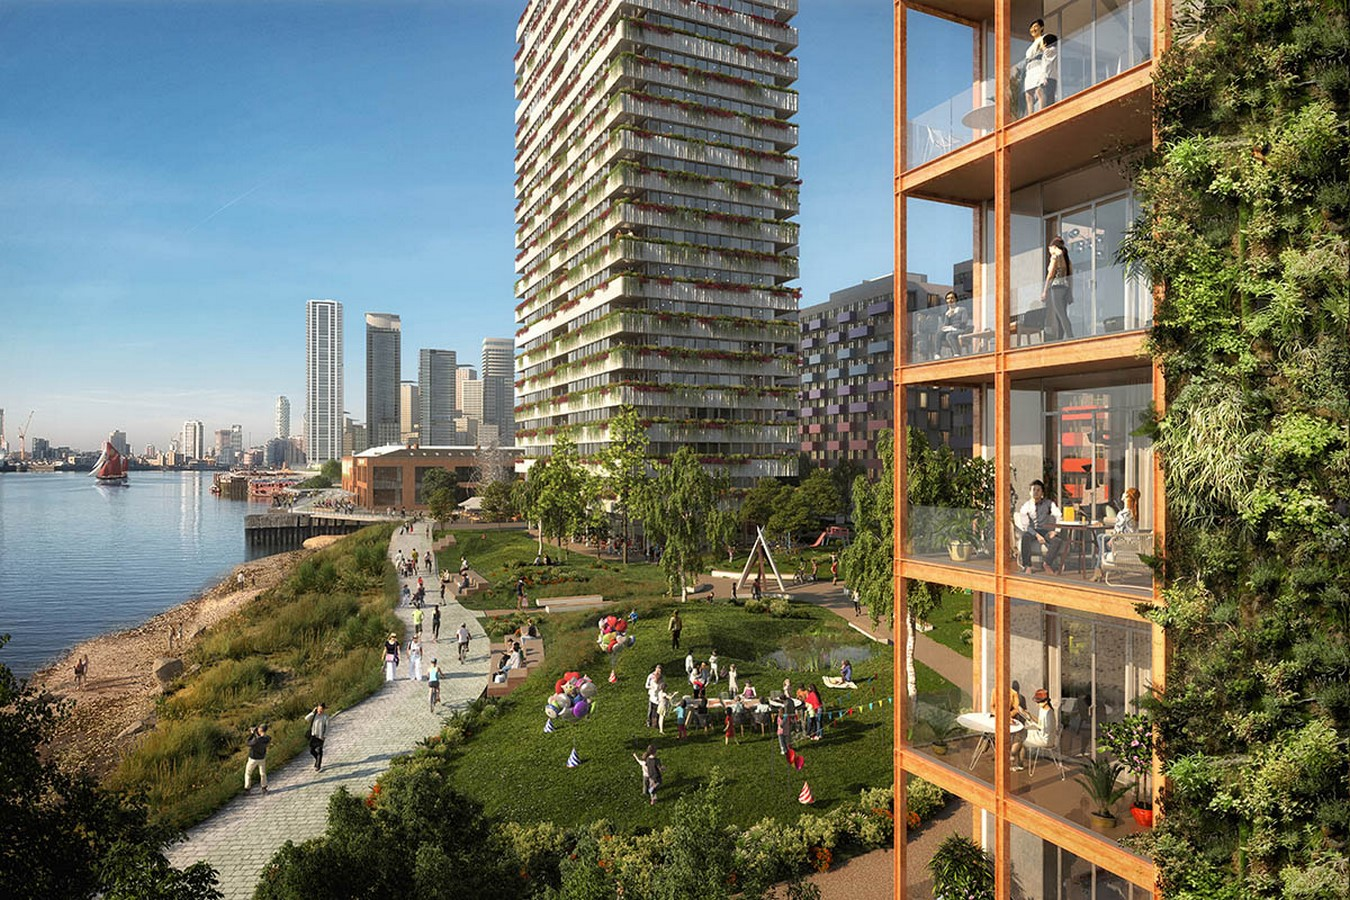 Masterplan by OMA / Reinier De Graaf For Morden Wharf In London Gets Planning Consent - Sheet4